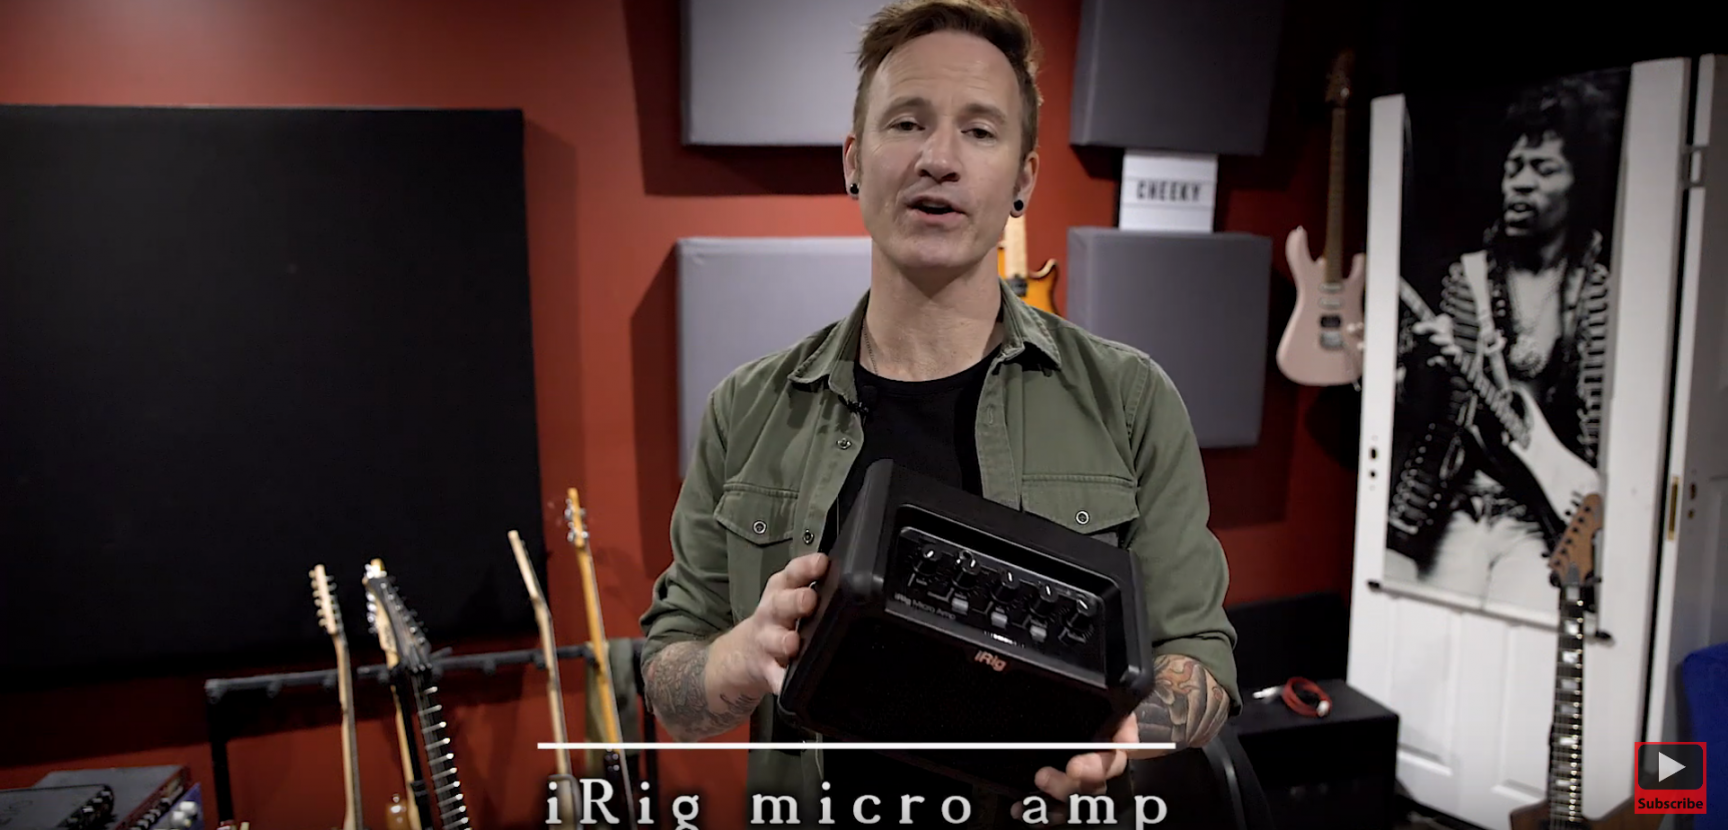 James Ryan checks out the new iRig Micro Amp from IK Multimedia